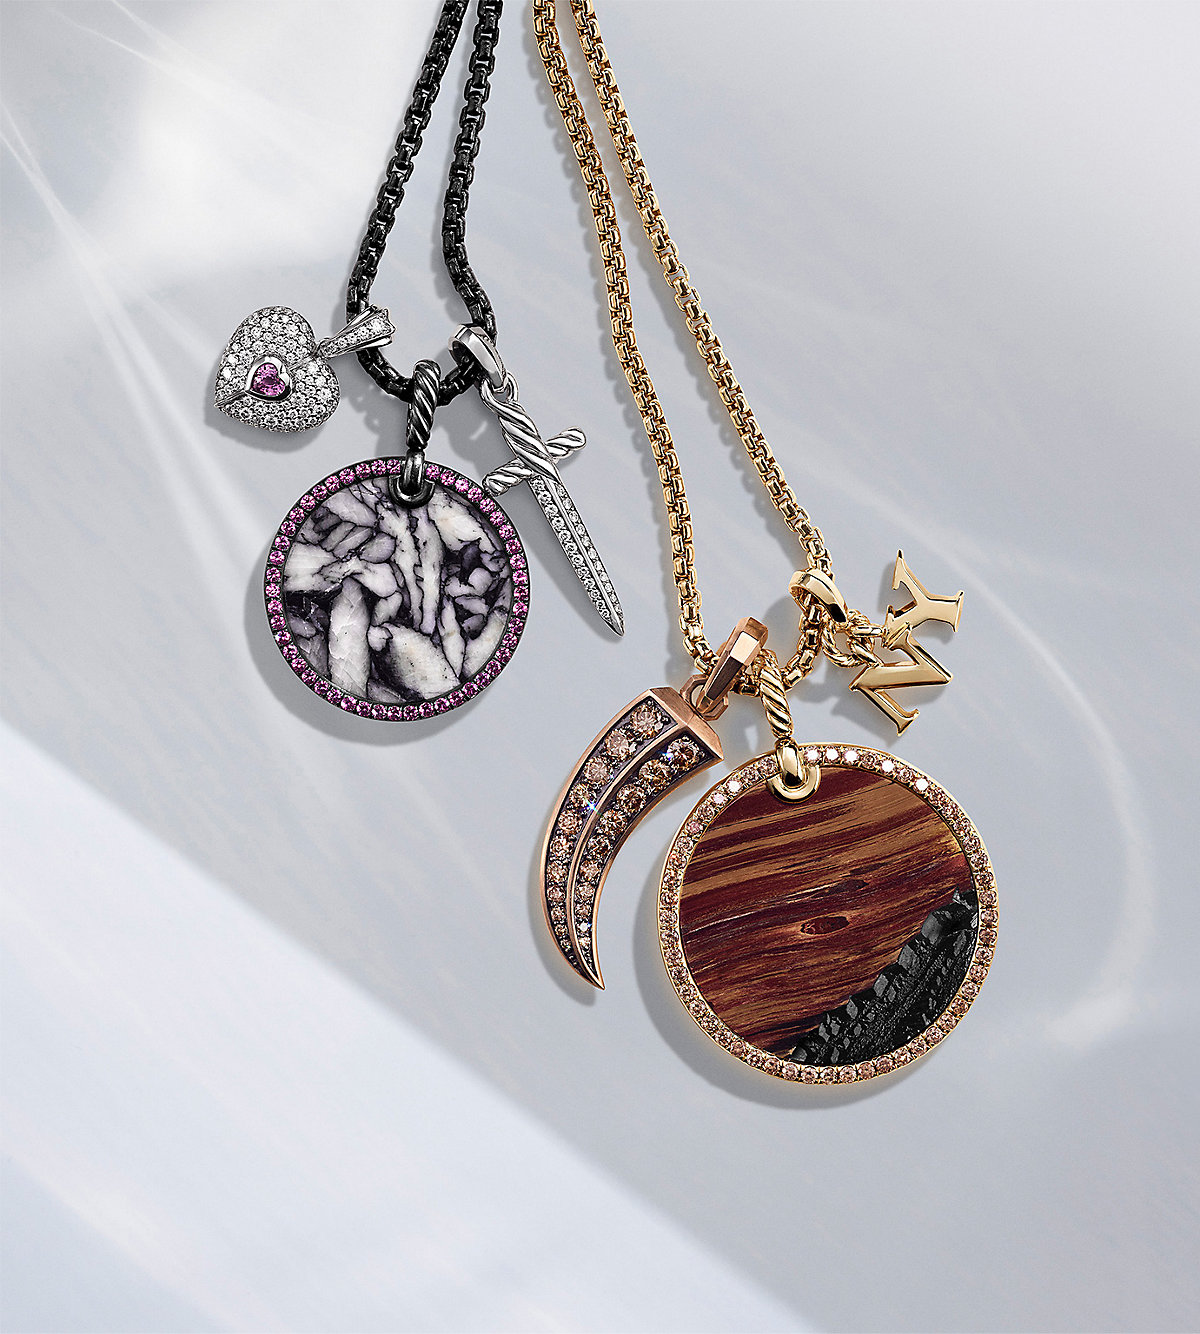 "A color photograph shows two David Yurman chain necklaces strung with three amulet pendants each. The women's jewelry is crafted from 18K yellow, rose or white gold or darkened sterling silver with or without pavé white or cognac diamonds, pink or yellow sapphires, rubies, pinolith or Marra Mamba tiger's eye. The pendants come in various shapes such as a heart, dagger, claw, ""NY"" initials or circles. The jewelry is lying on a white background with soft shadows and reflections."